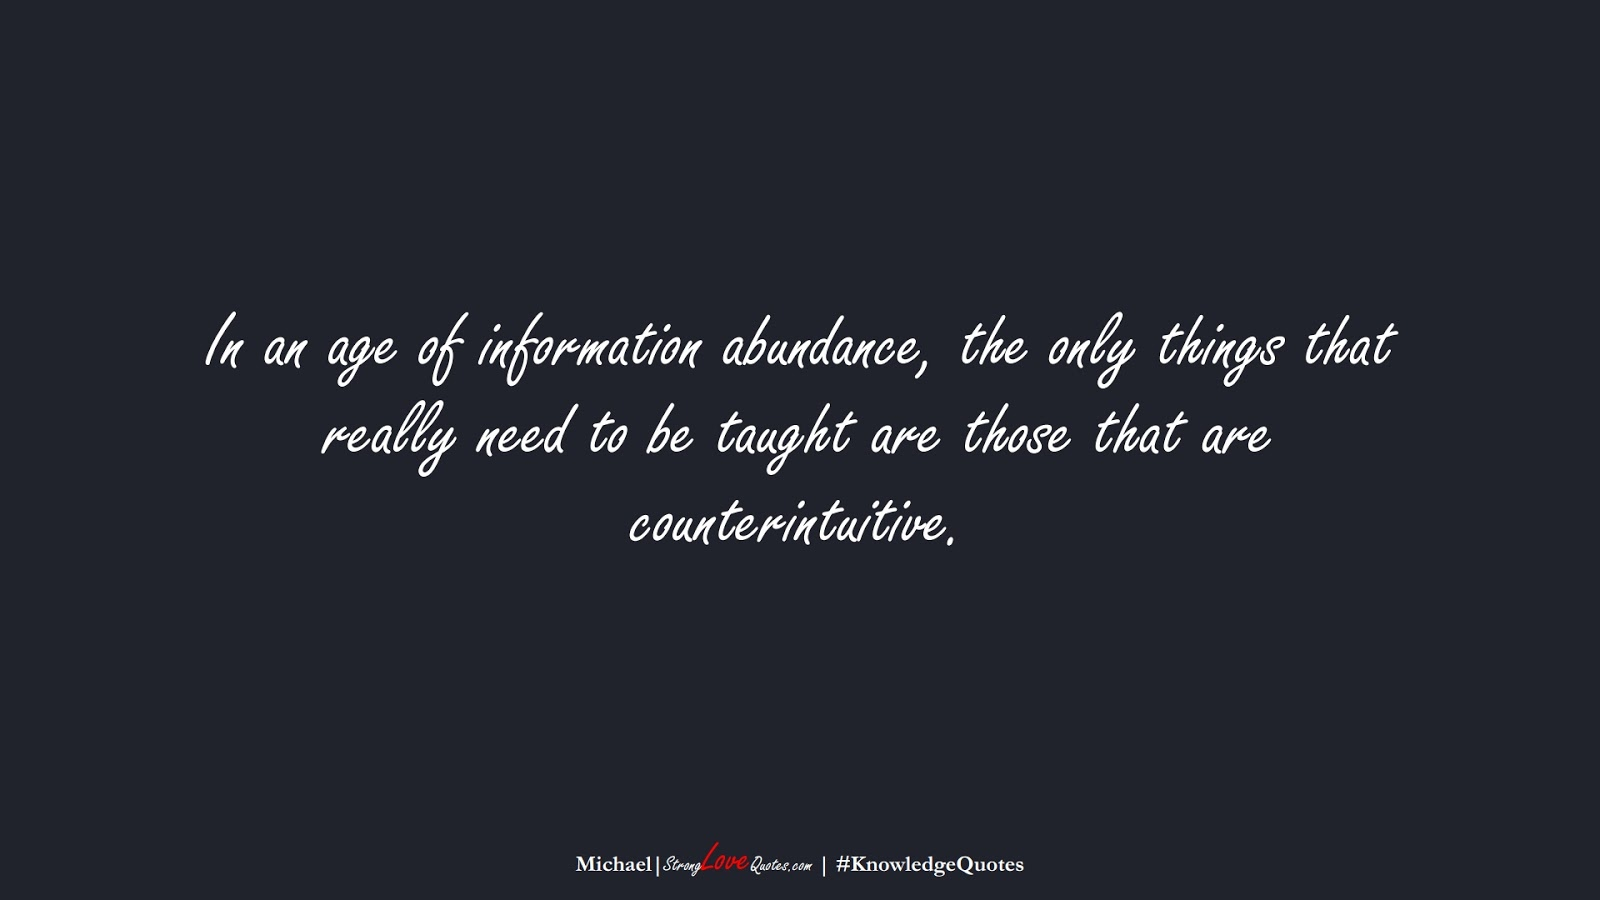 In an age of information abundance, the only things that really need to be taught are those that are counterintuitive. (Michael);  #KnowledgeQuotes